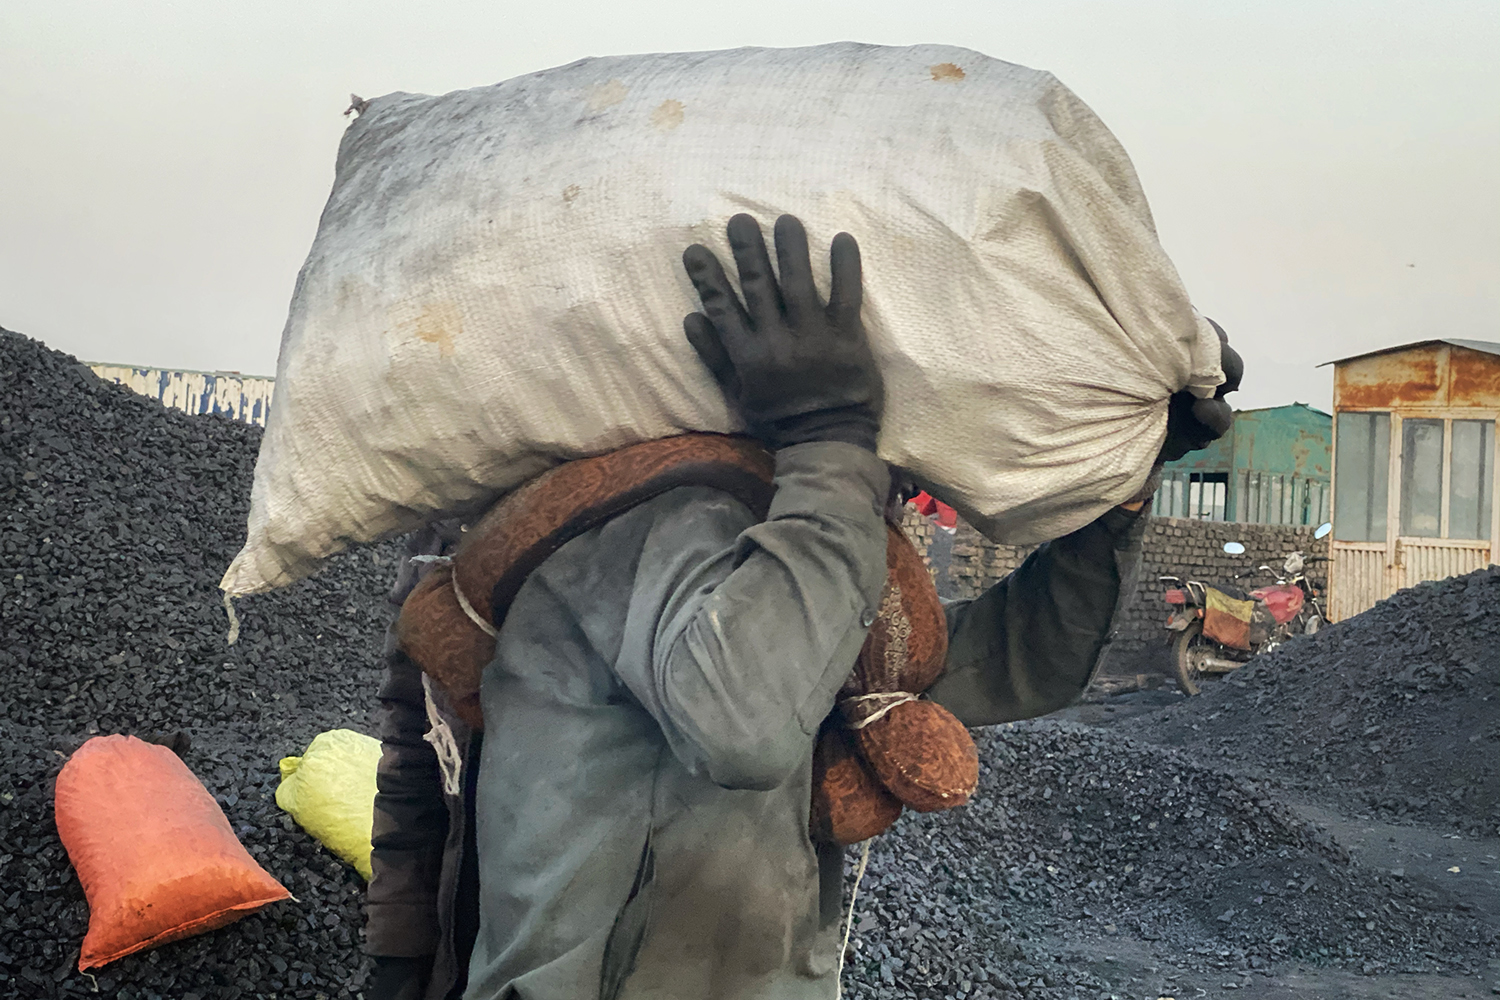 A coal trader lifts bags at a coal distribution workshop in the northern city of Mazar-i-Sharif, Afghanistan, on Sept. 26.